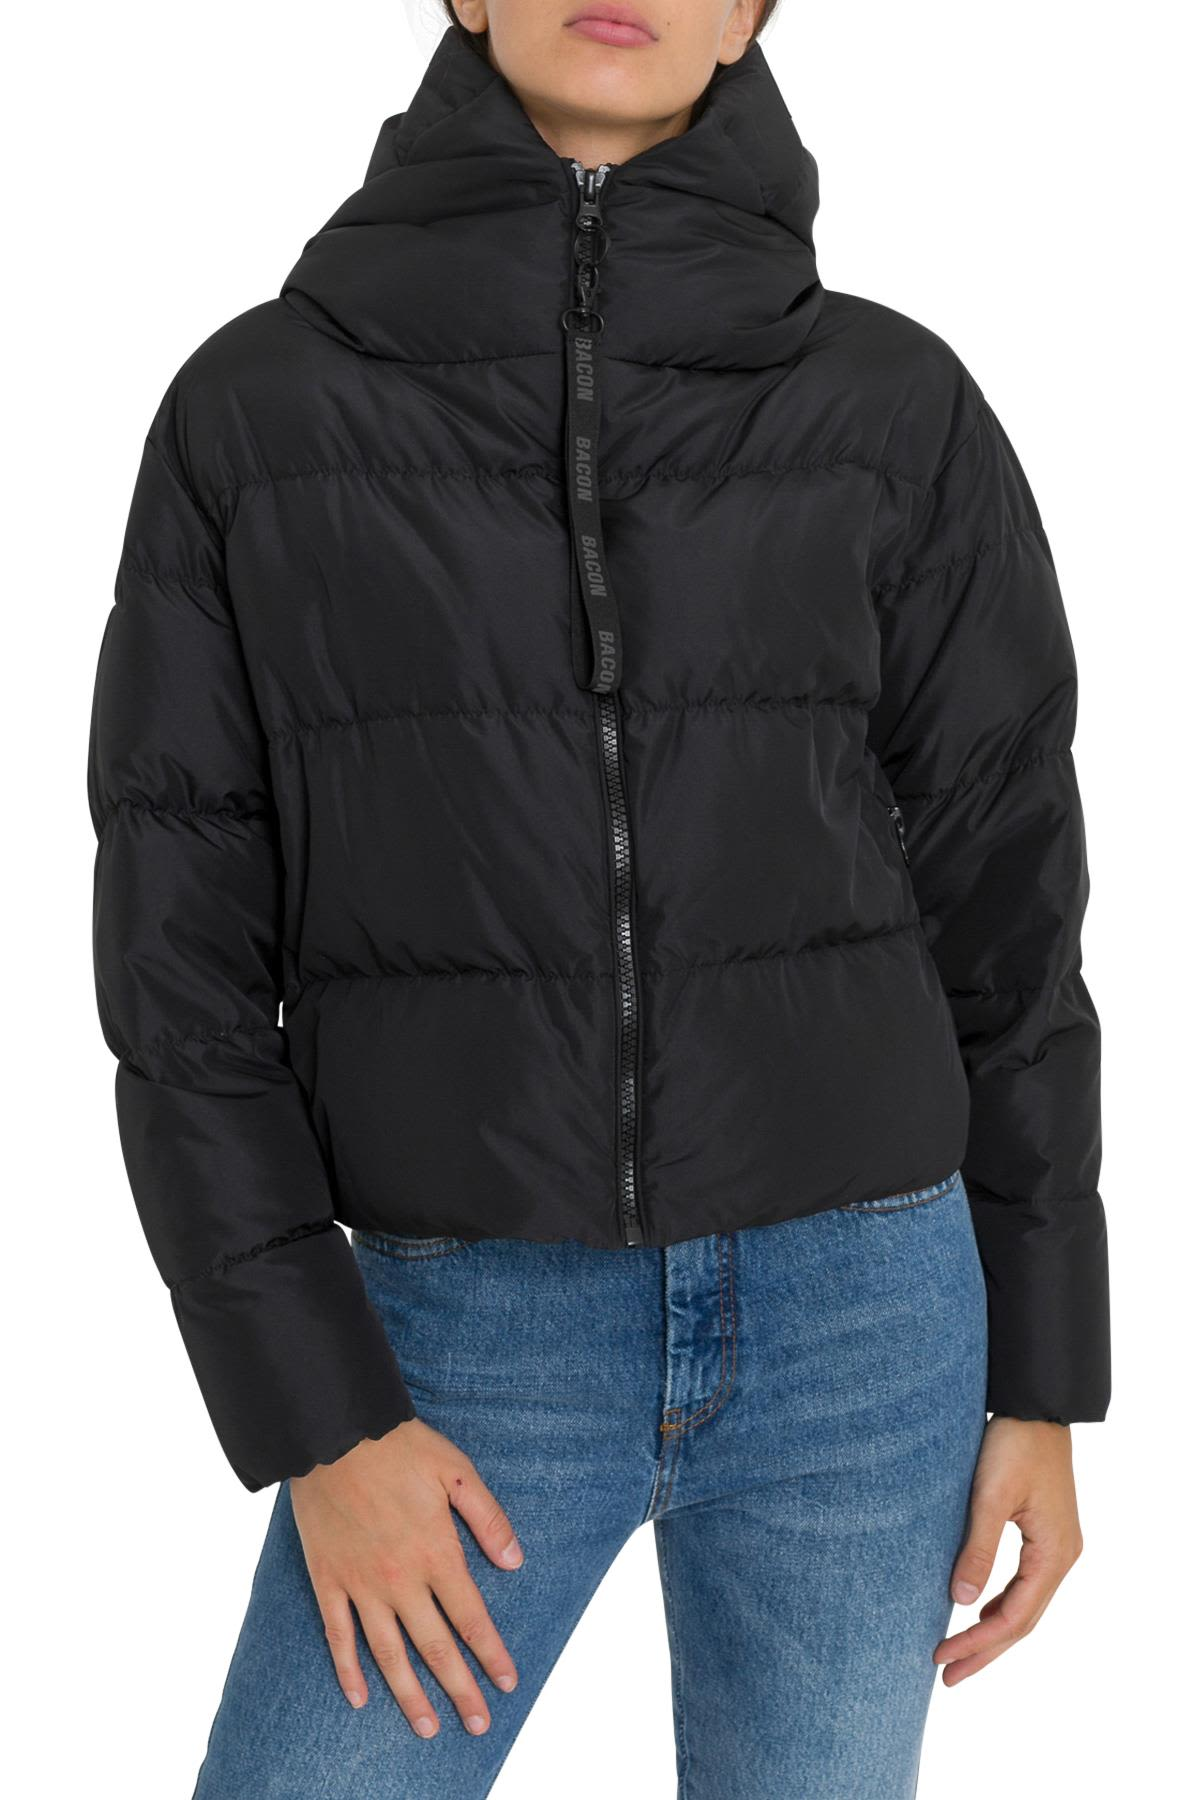 BACON CLOTHING Short Down Jacket With Hood in Nero